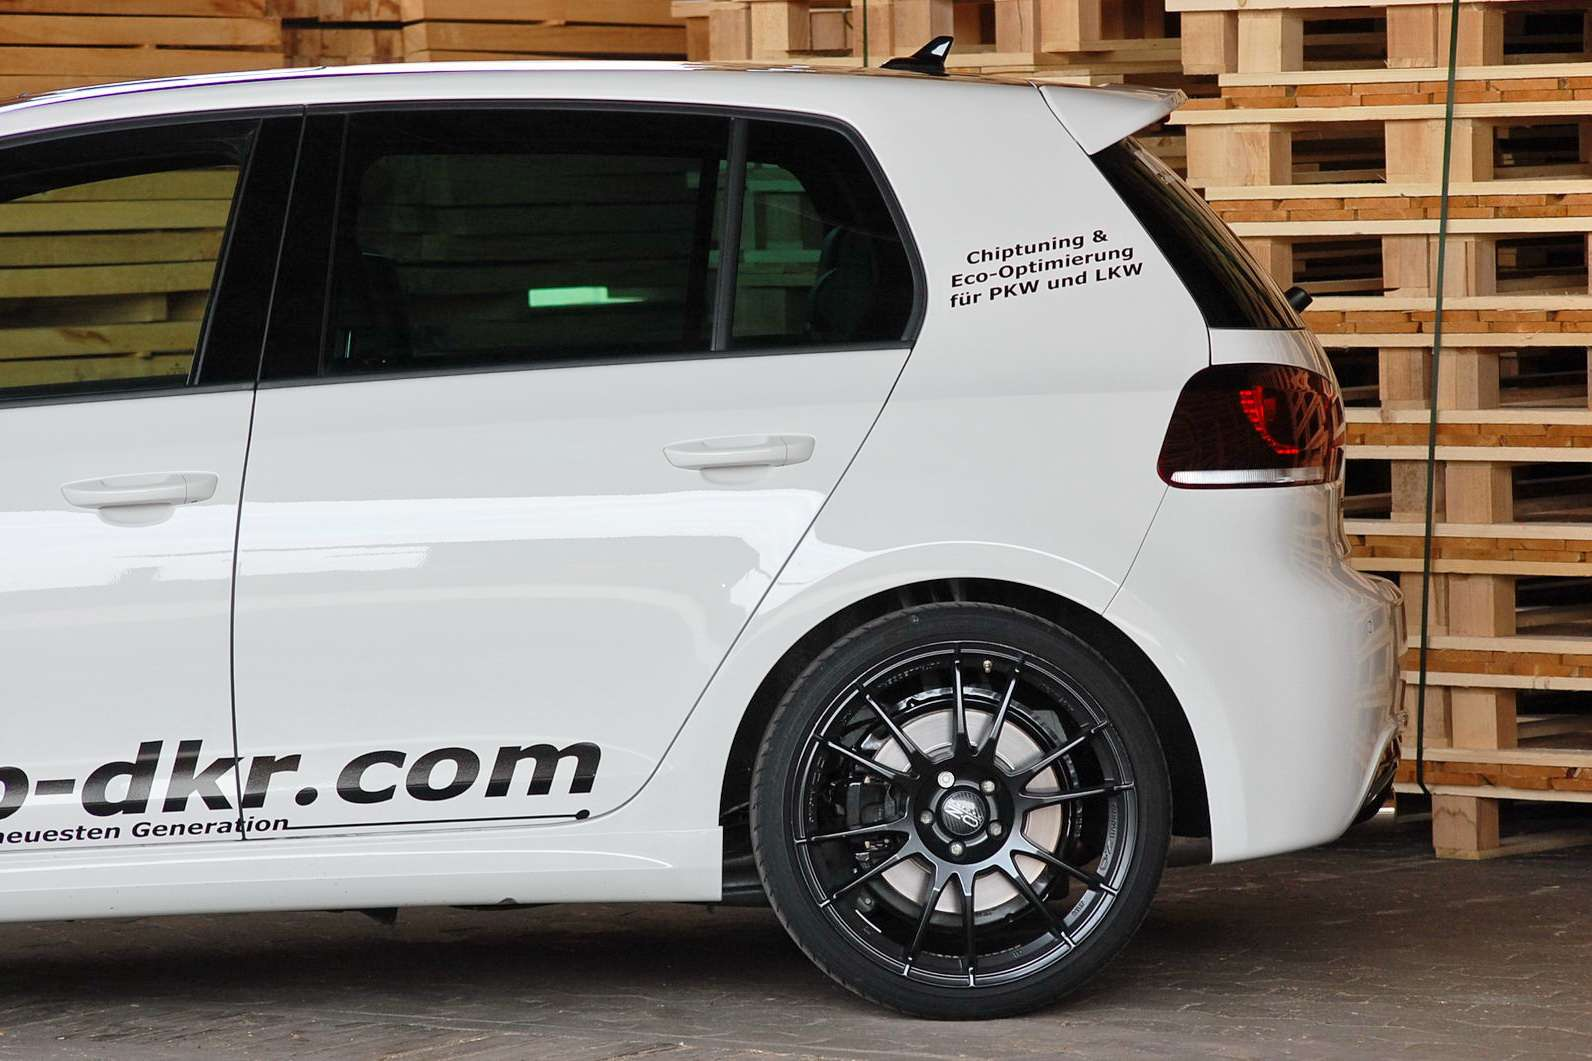 VW Golf R Mcchip-dkr sierpien 2010